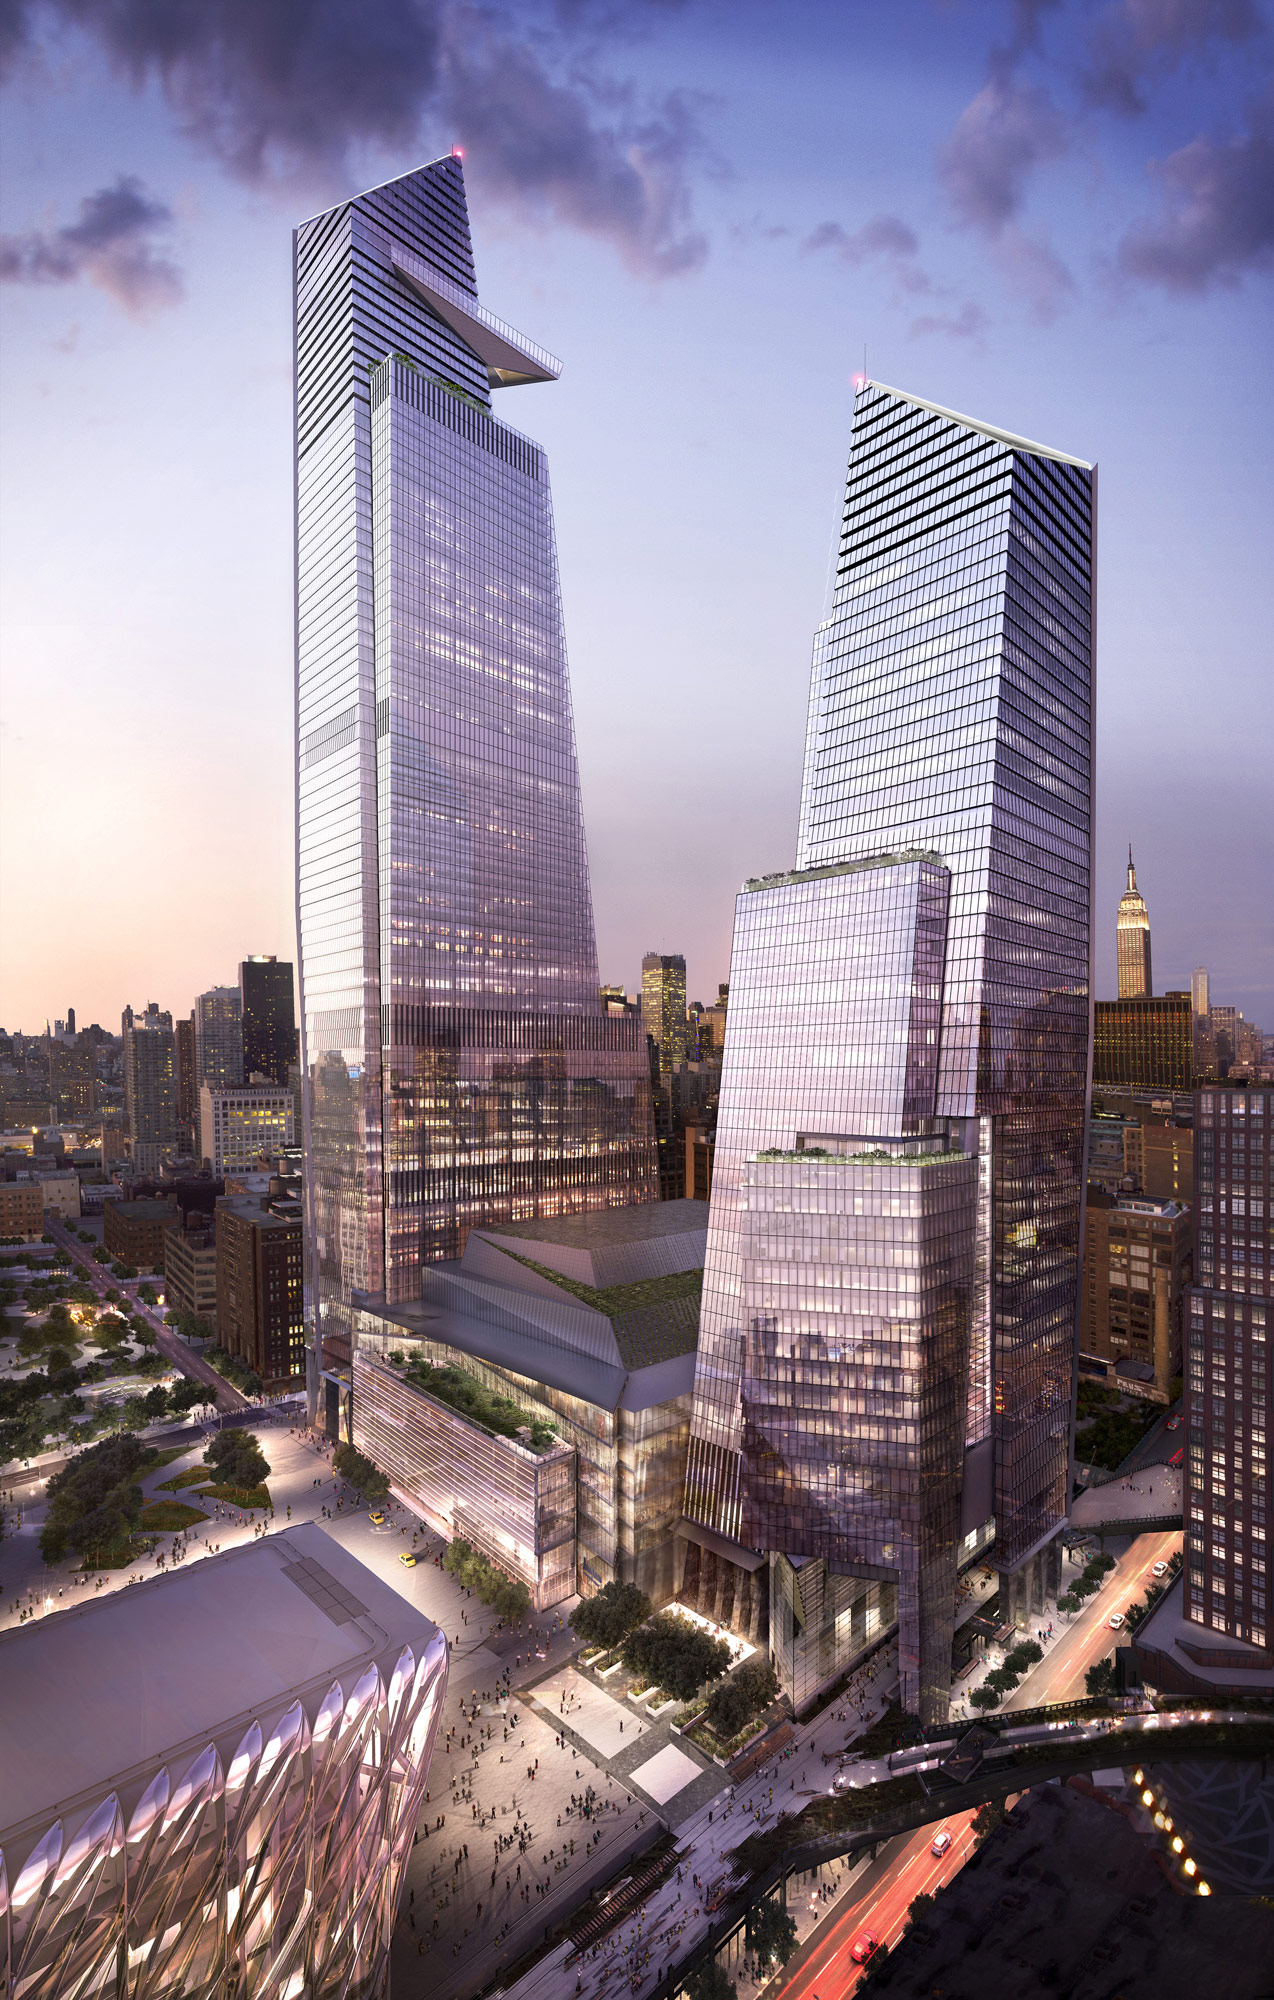 10 and 30 Hudson Yards, with Retail, Looking Northeast (c) Related, Oxford